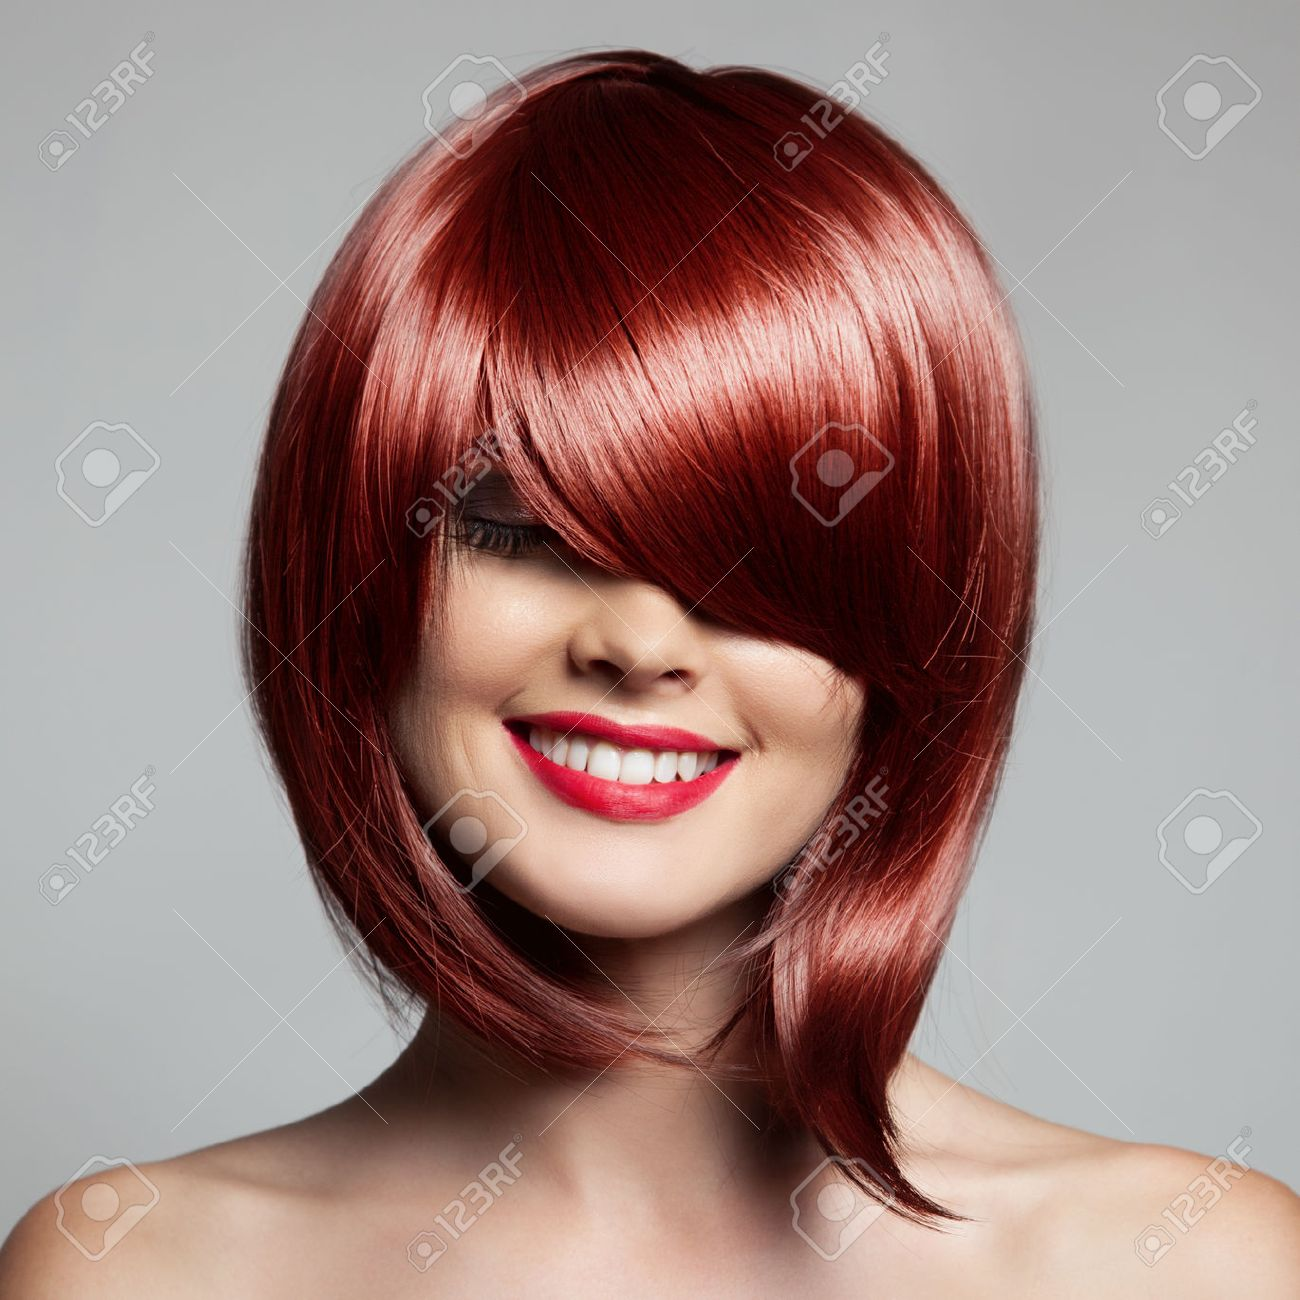 Smiling Beautiful Woman With Red Short Hair Haircut Hairstyle